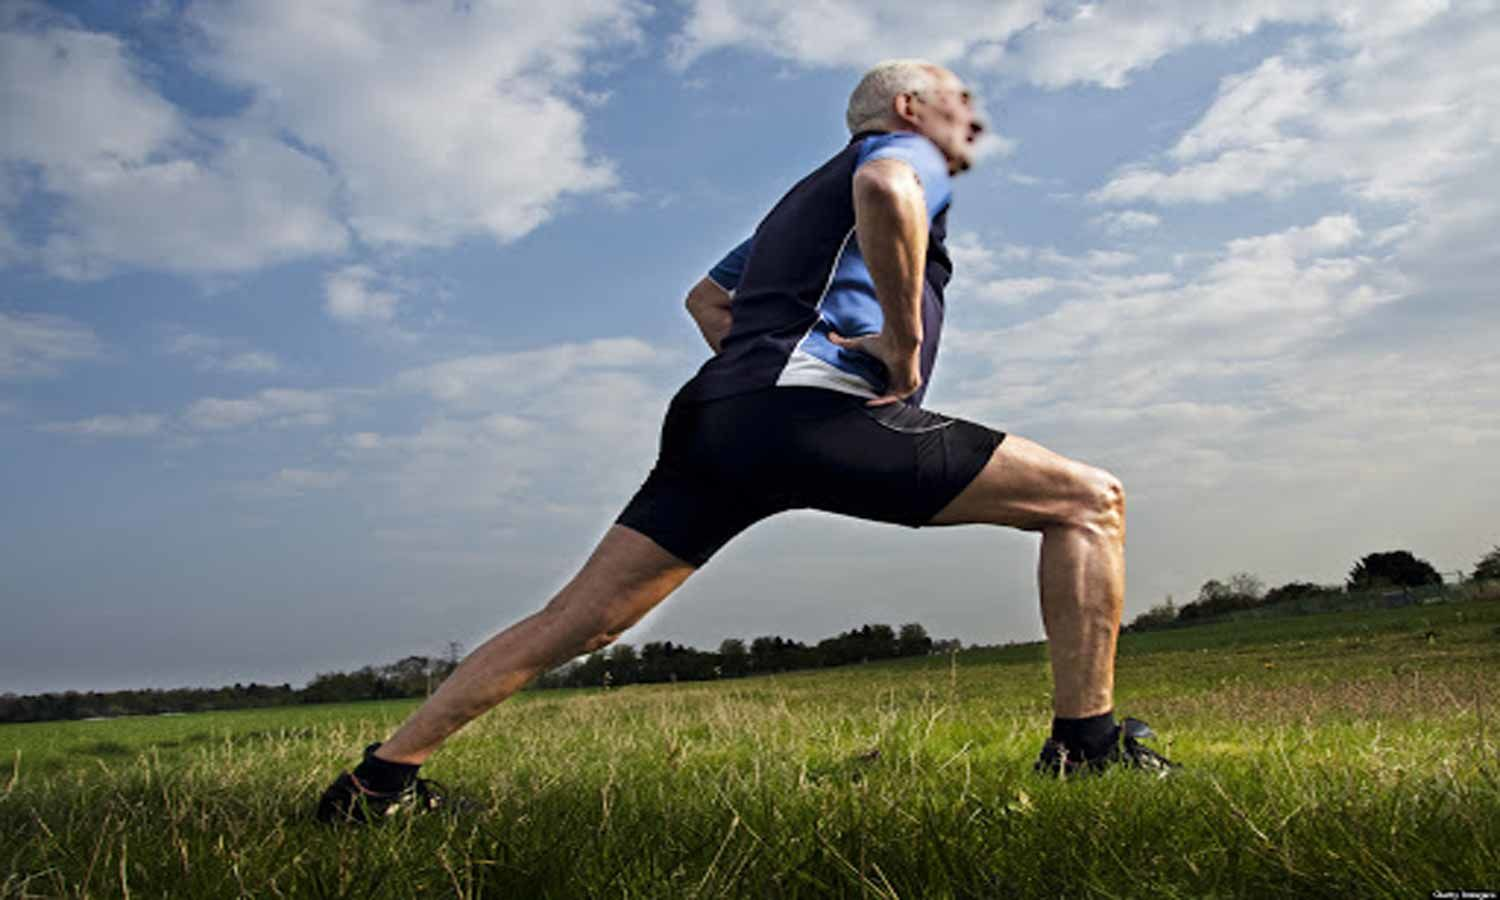 Physically active older veterans more prone to fall, but hurt themselves less